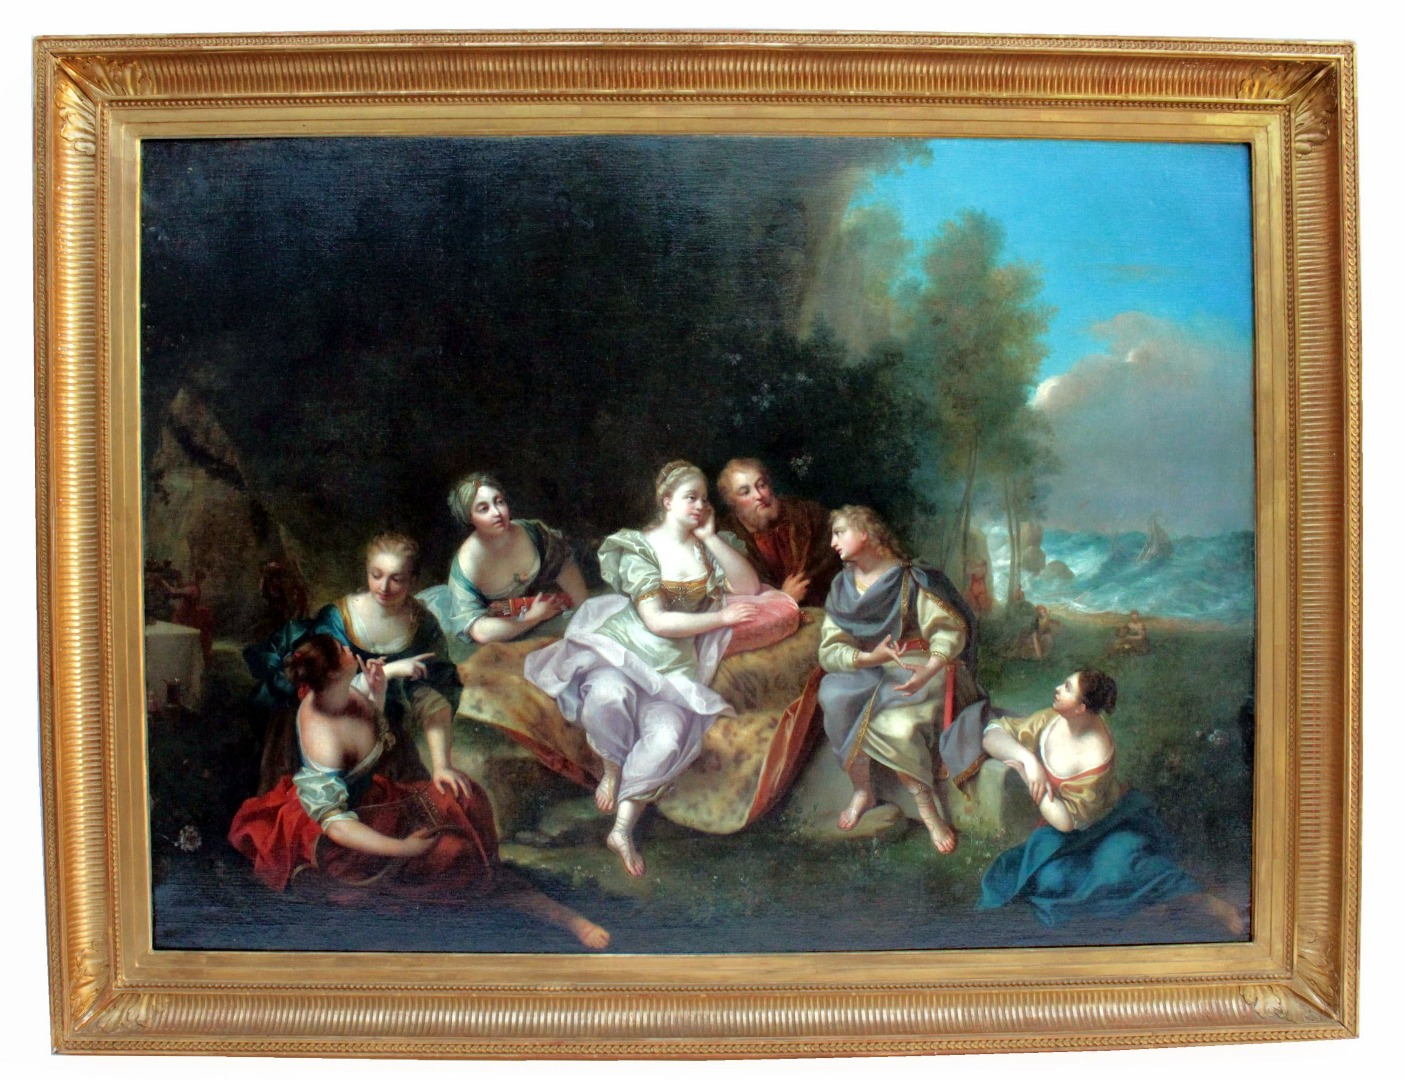 OIL ON CANVAS BY Jean Raoux (1677-1734)